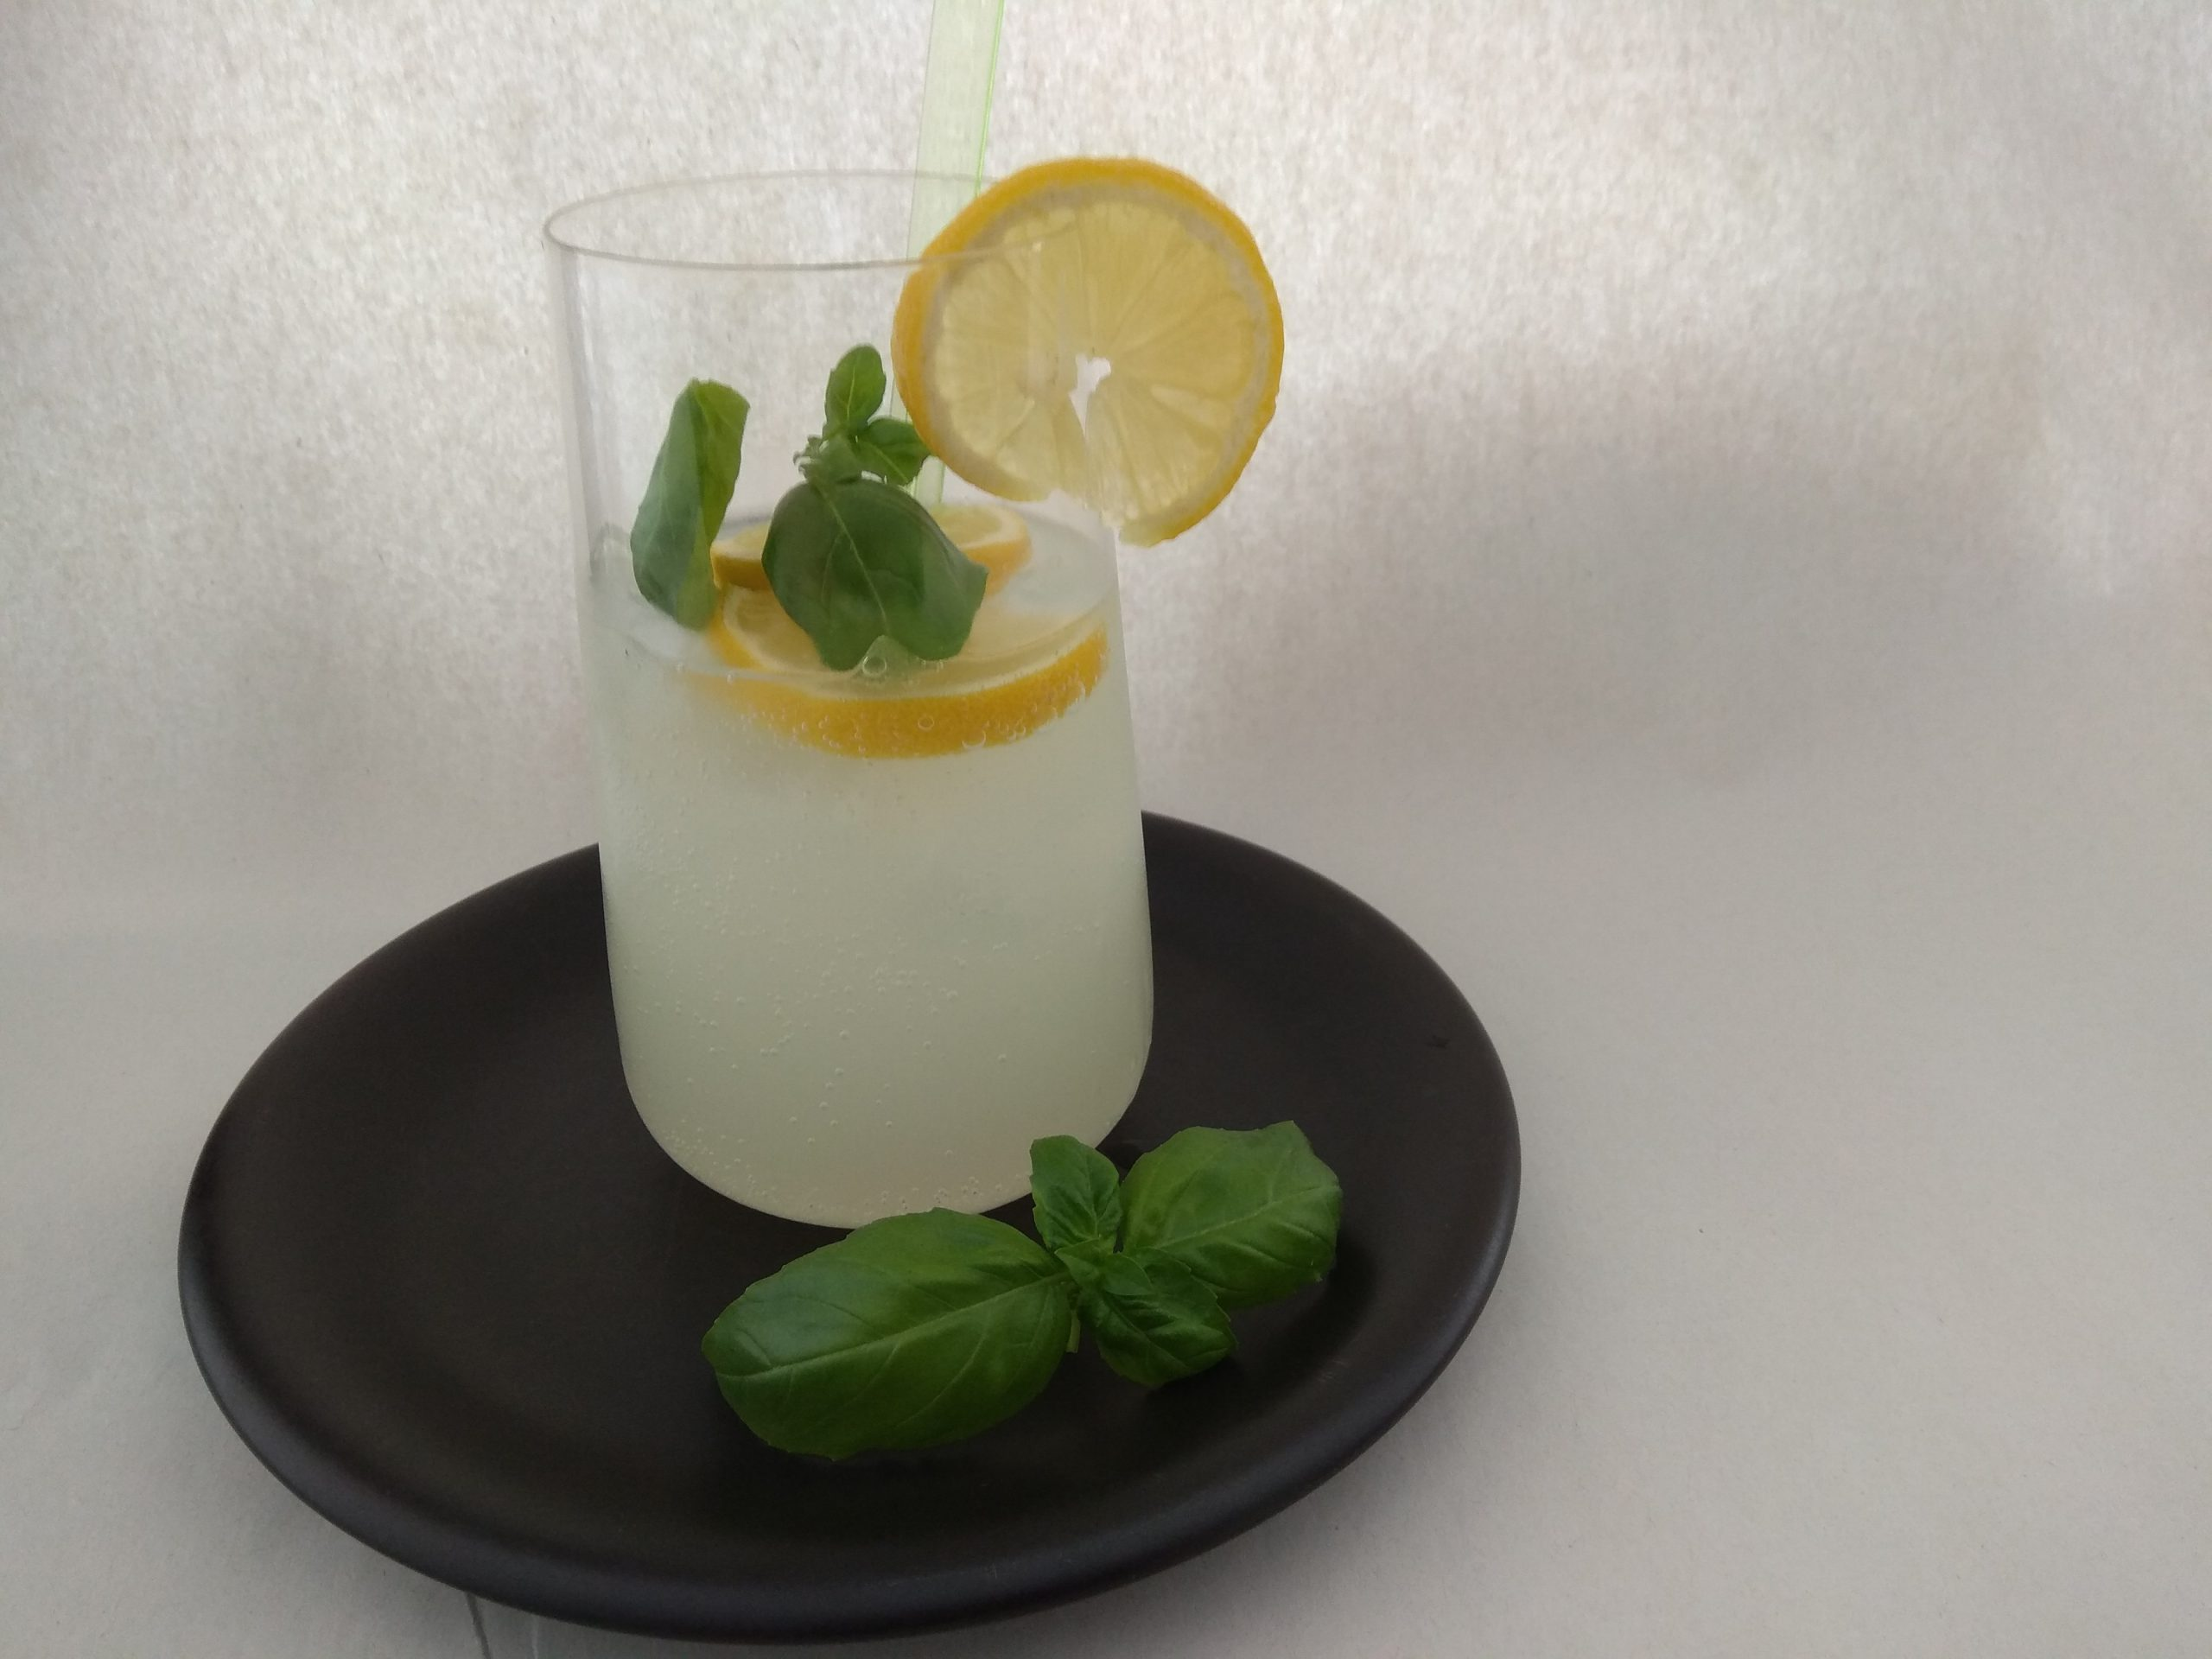 the lemonbalcony cocktail - basishulp